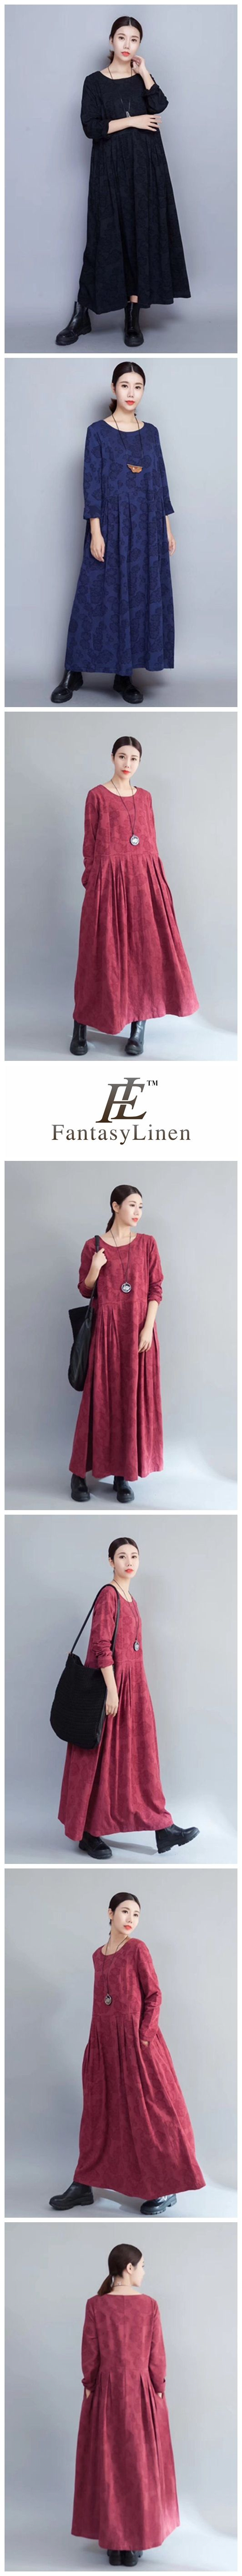 Flower Long Sleeve Casual Maxi Dresses Women Clothes in Red 8007  8007Red